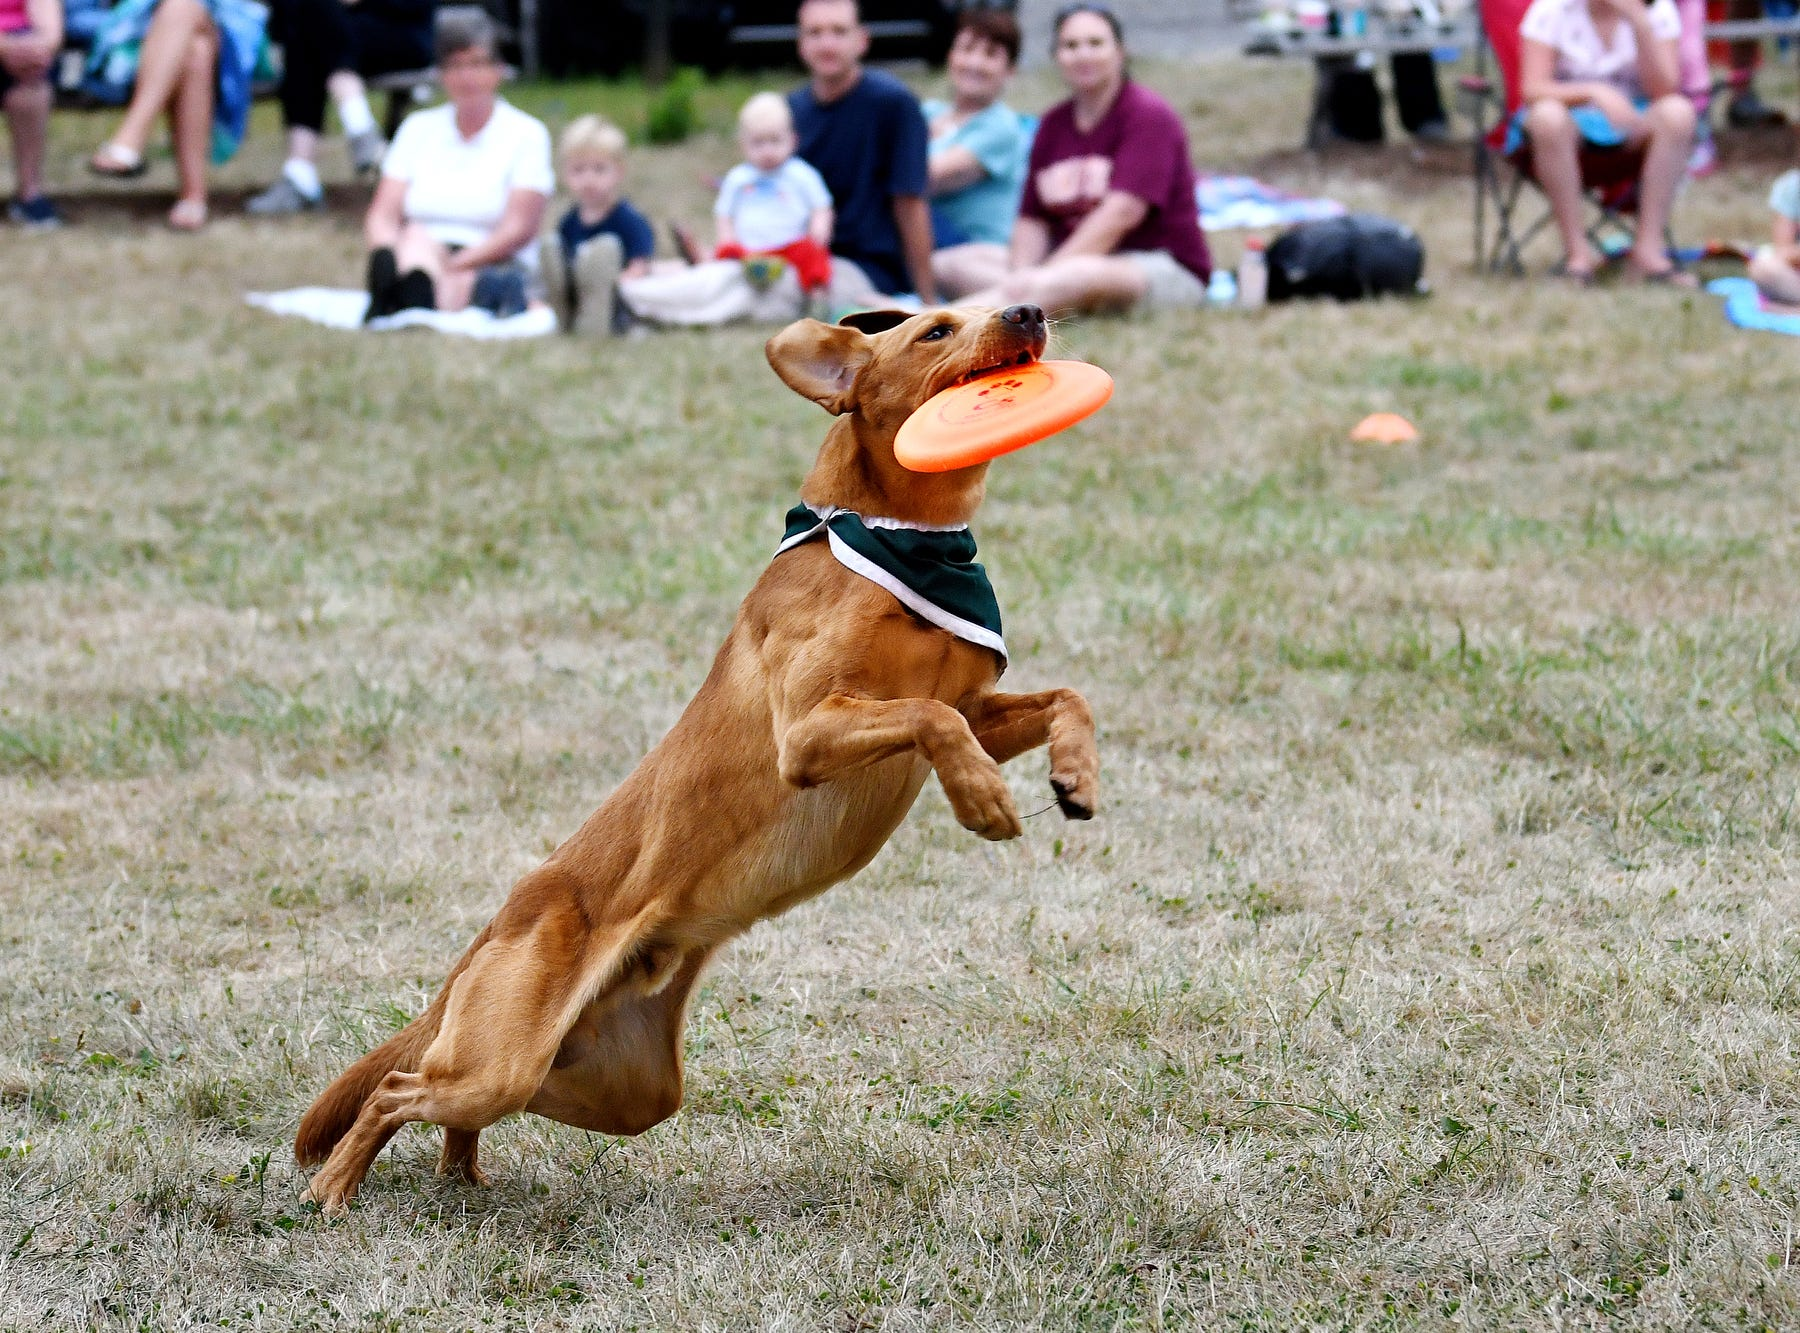 Zeke the Wonderdog IV catches a flying disc that his caretaker Jim Foley threw during Play in the Park on Tuesday, July 31, 2018, at Valley Court Park in East Lansing.